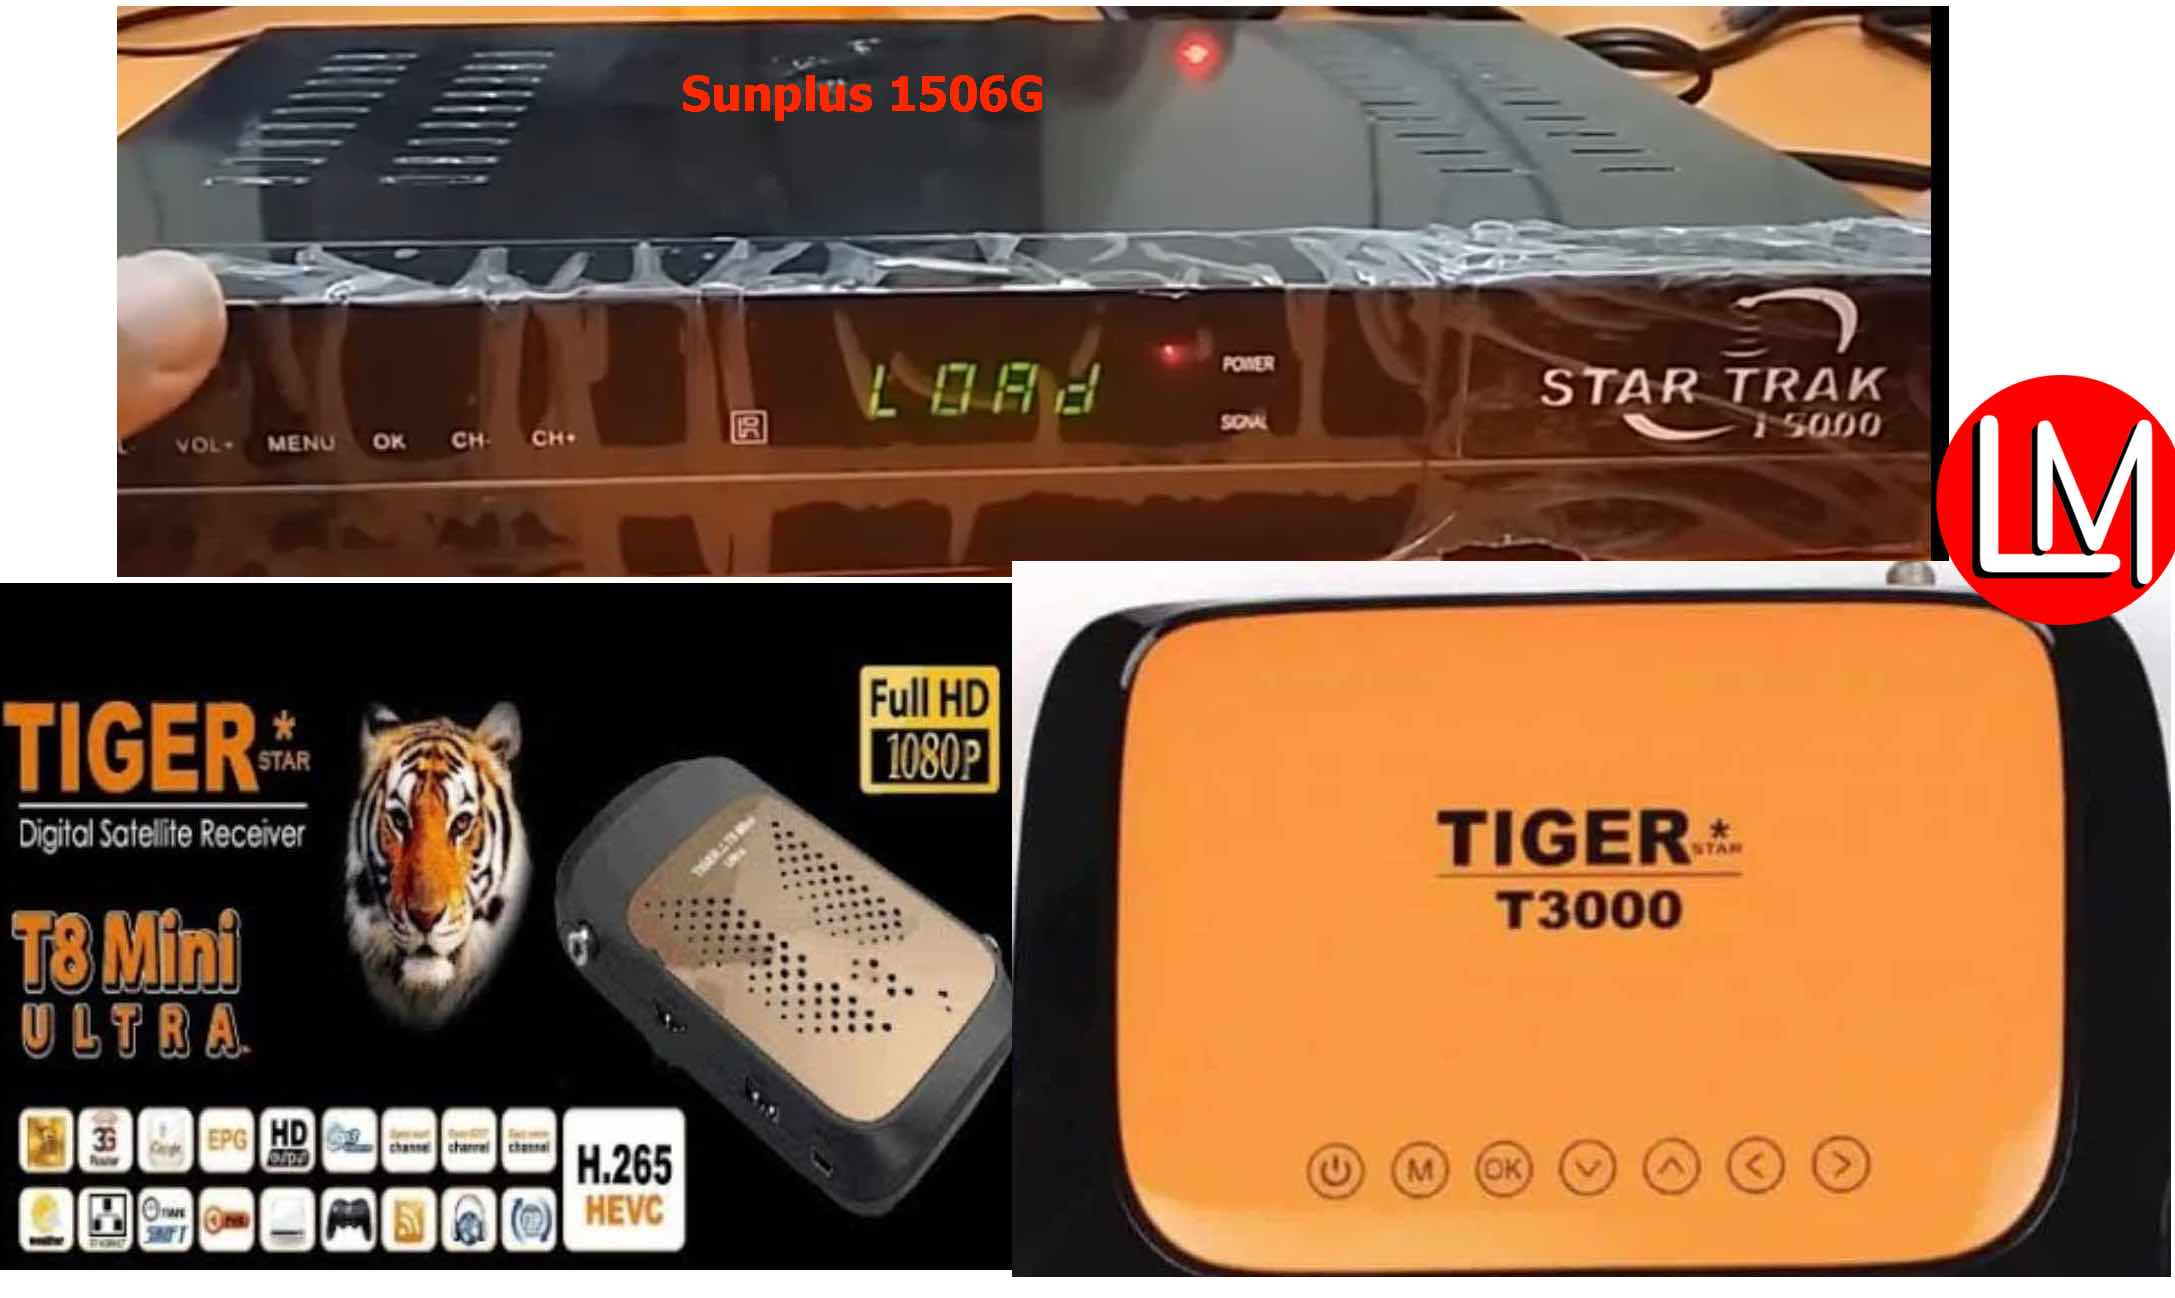 recover dead tigerstar and sunplus receivers